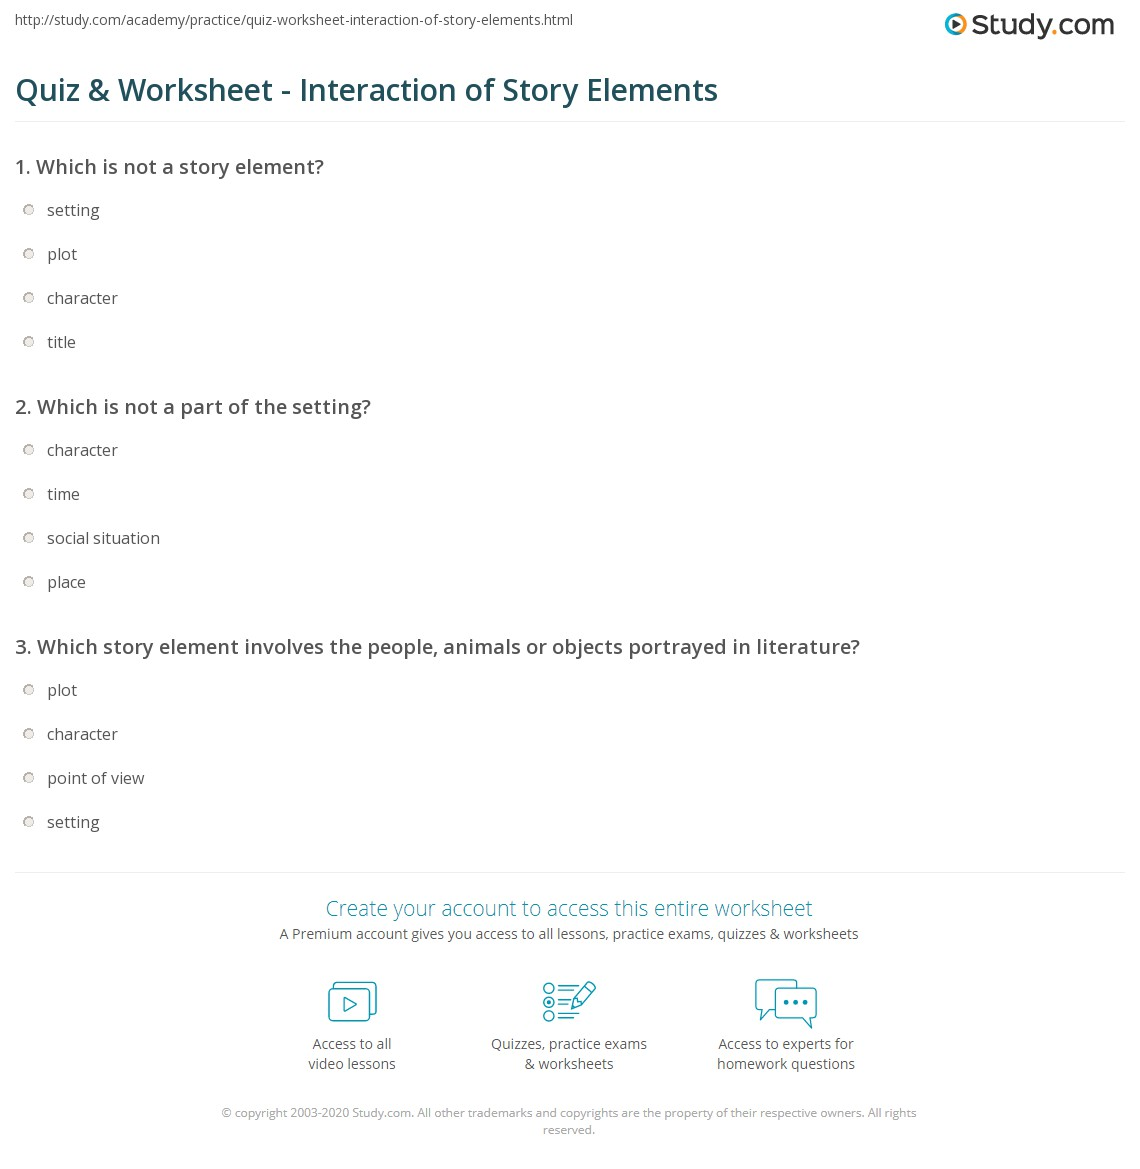 Worksheets Story Elements Worksheets quiz worksheet interaction of story elements study com print analyzing how interact worksheet